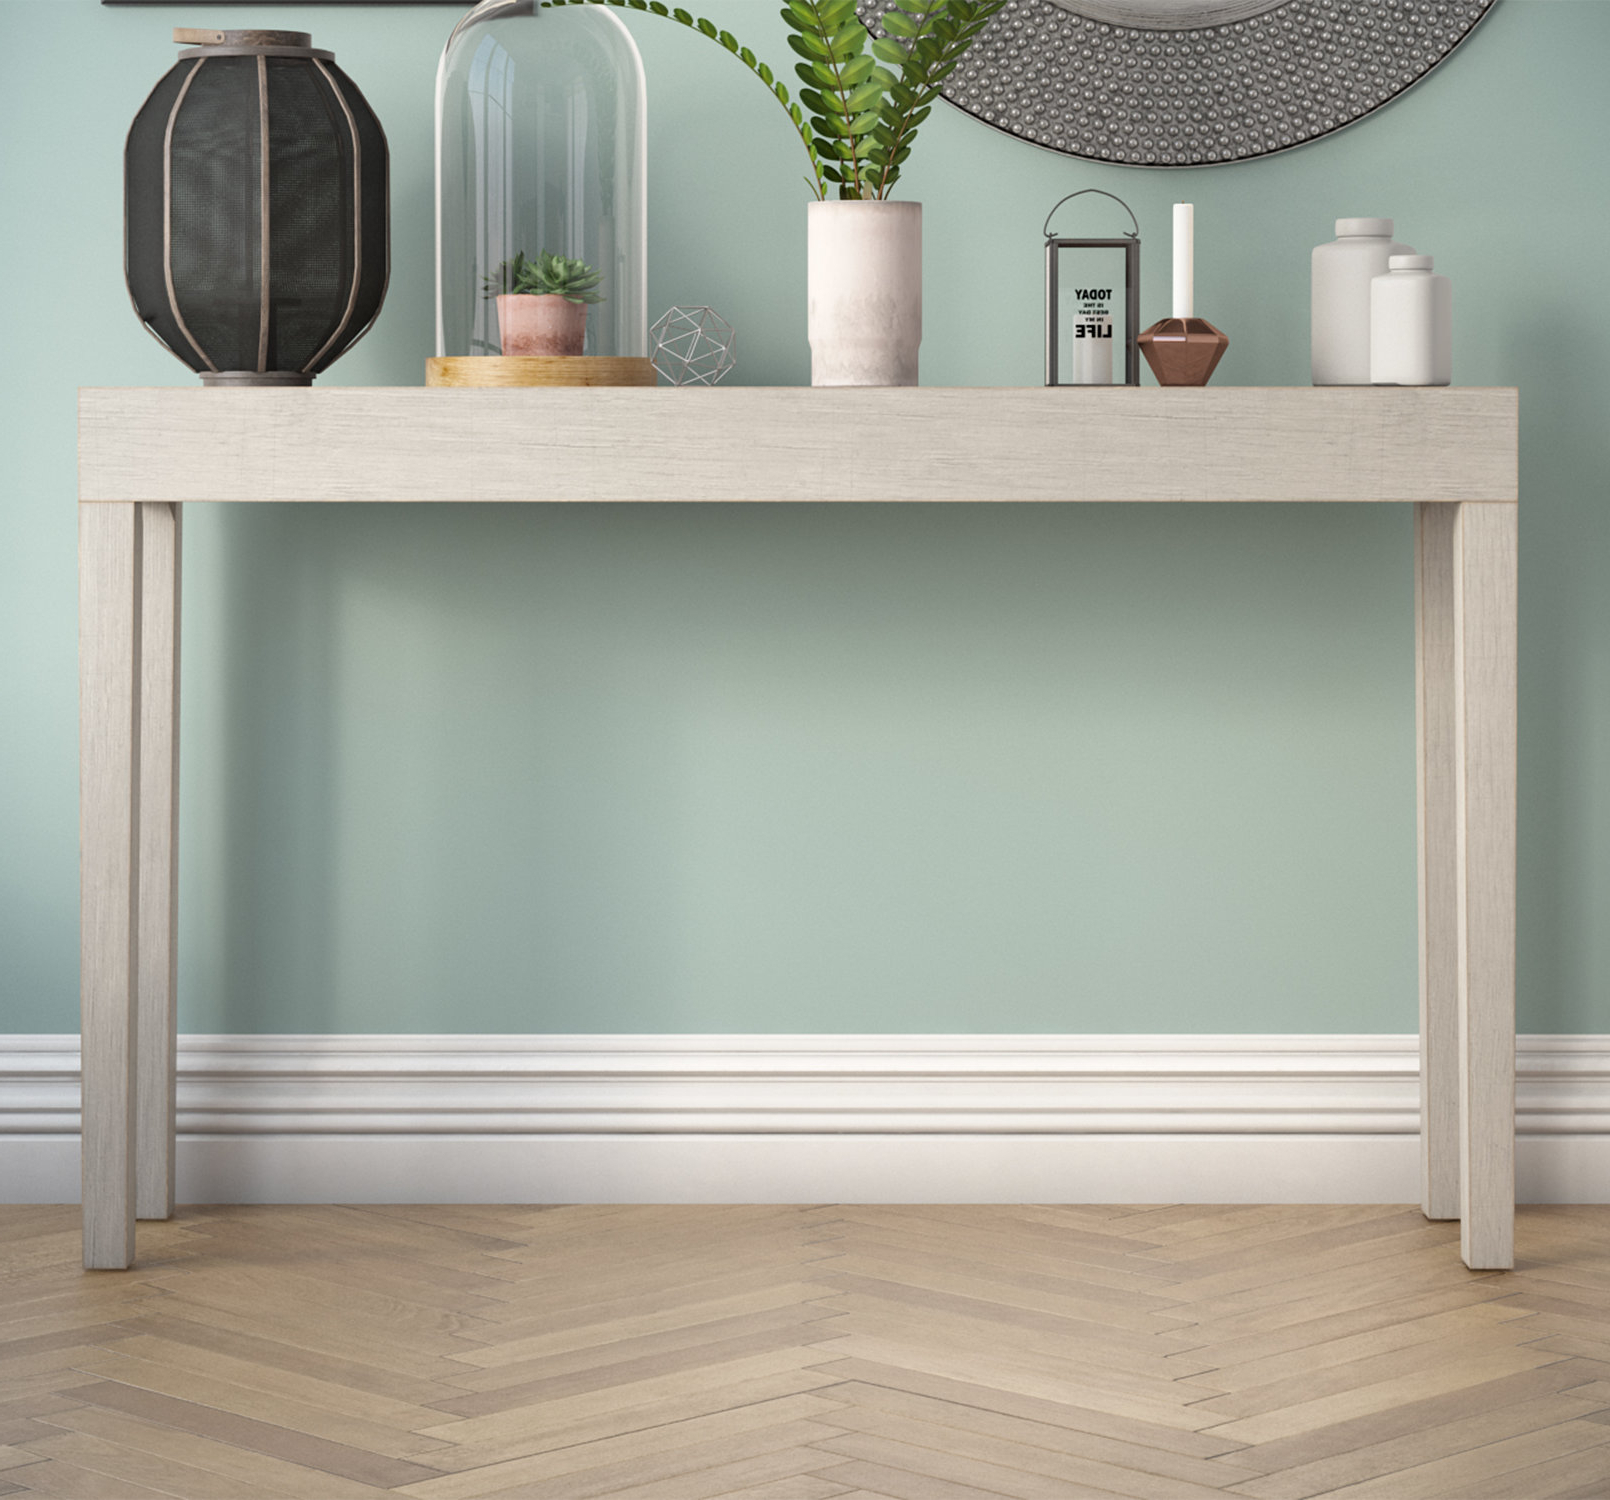 Grey Painted Console Table | Wayfair.co.uk With Regard To Natural Wood Mirrored Media Console Tables (Gallery 14 of 20)